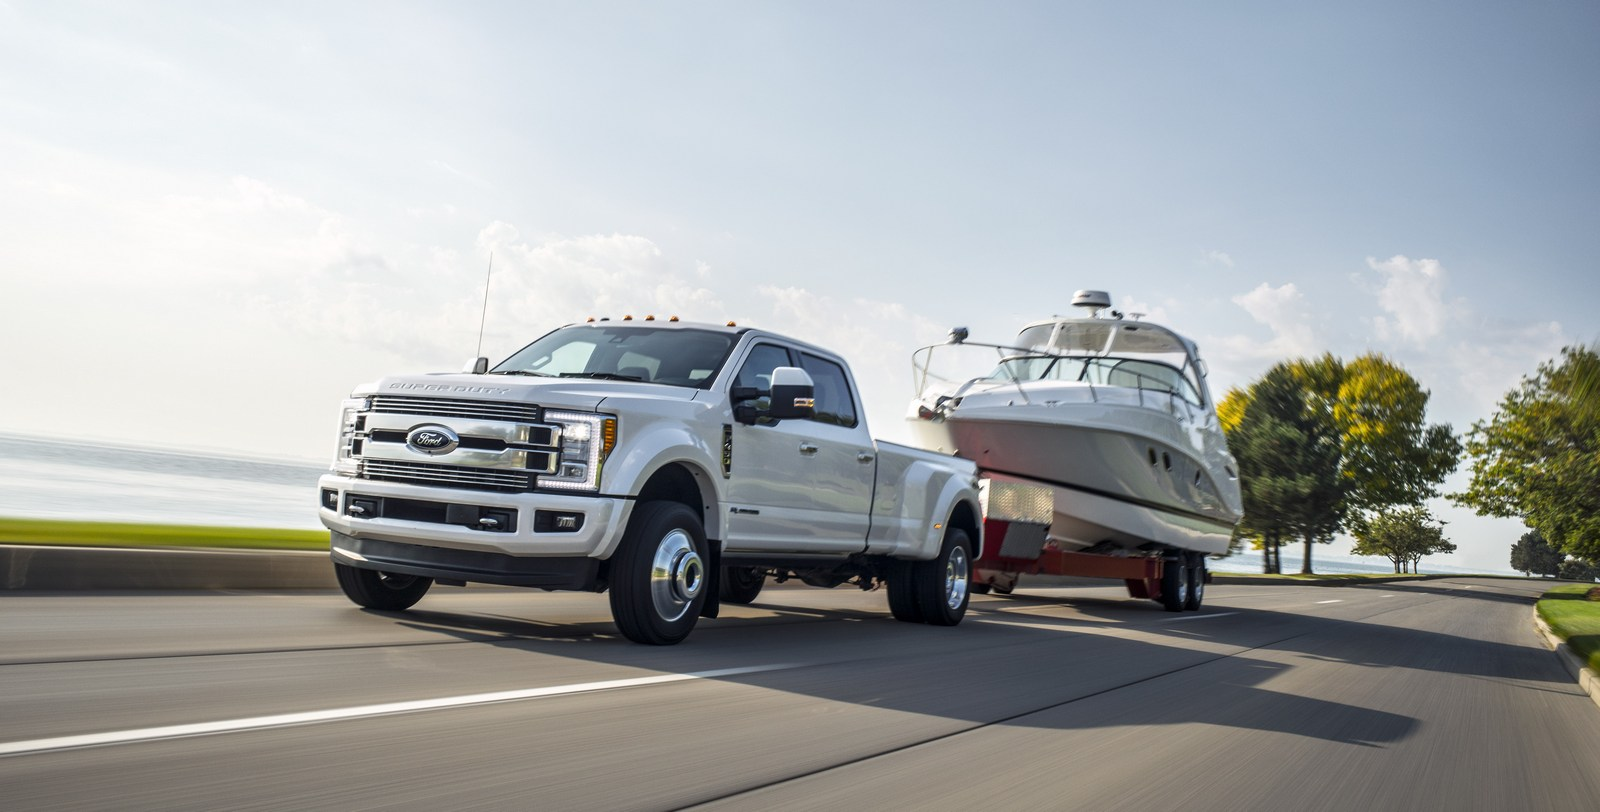 2018 Ford F-Series Super Duty Gains Upgraded Diesel Engine With 935 Lb-Ft Of Torque